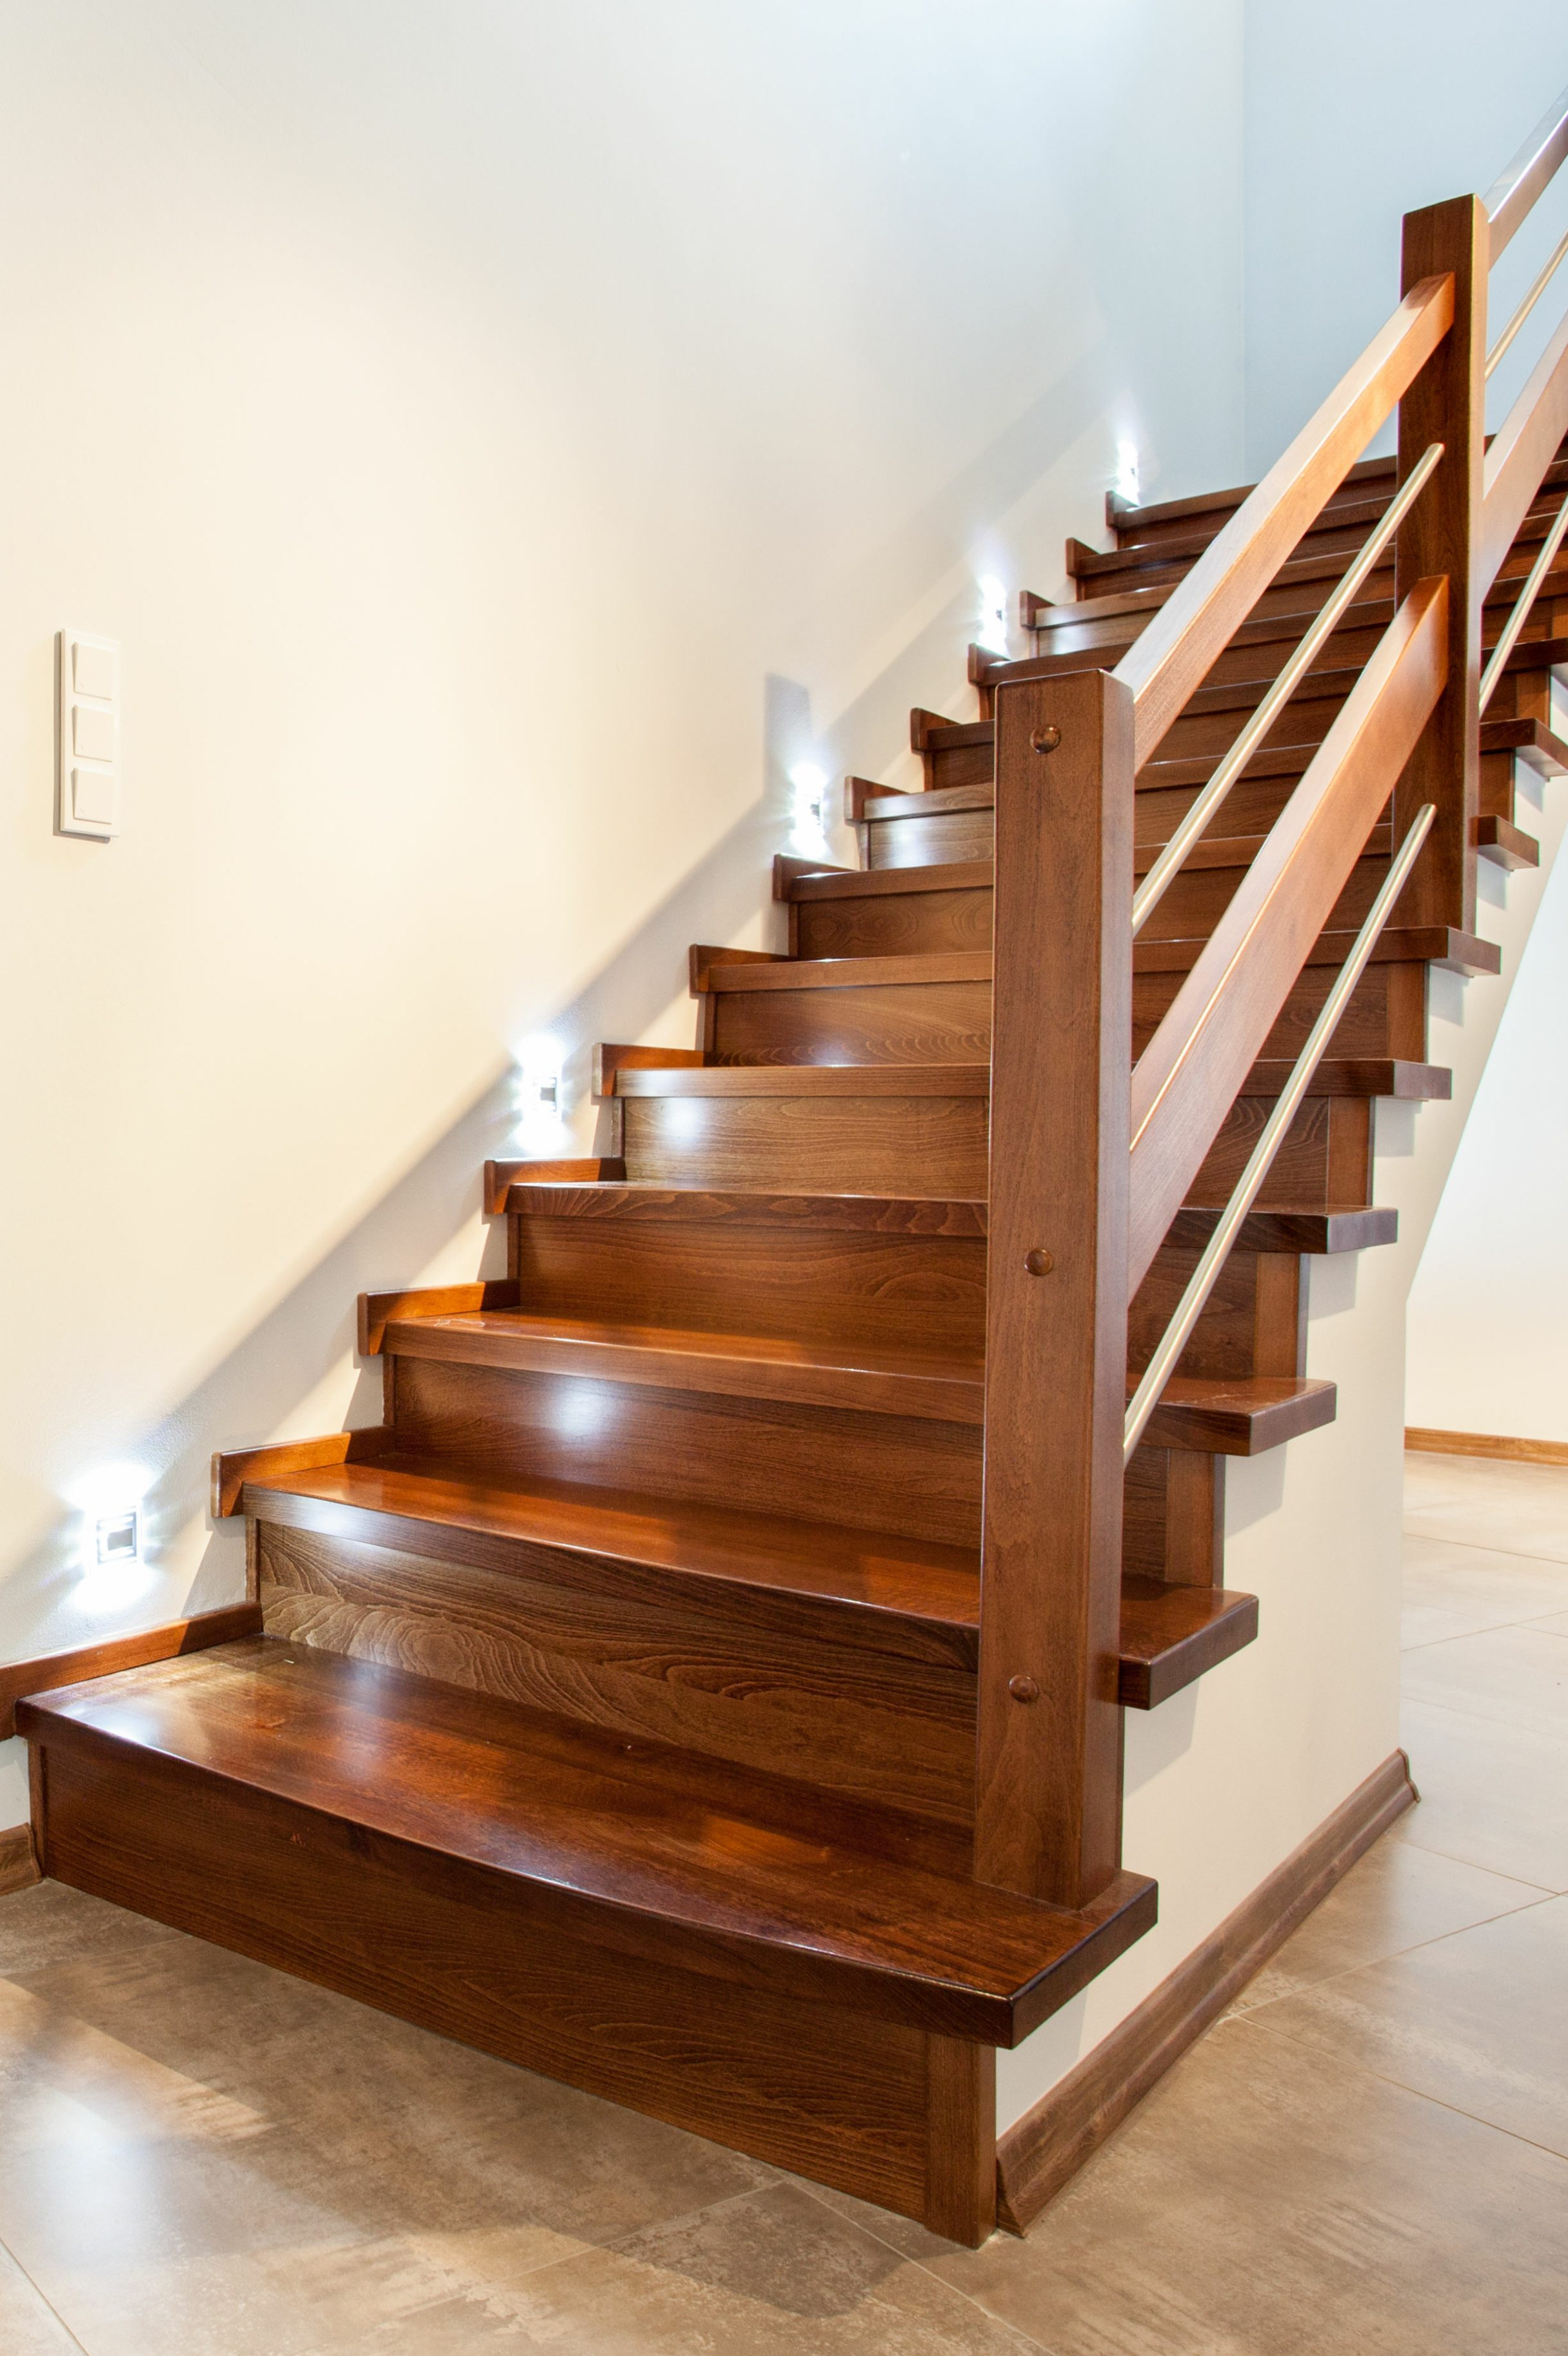 Wooden reclaimed luxury wood staircase in Loma Linda, Falfa Colorado